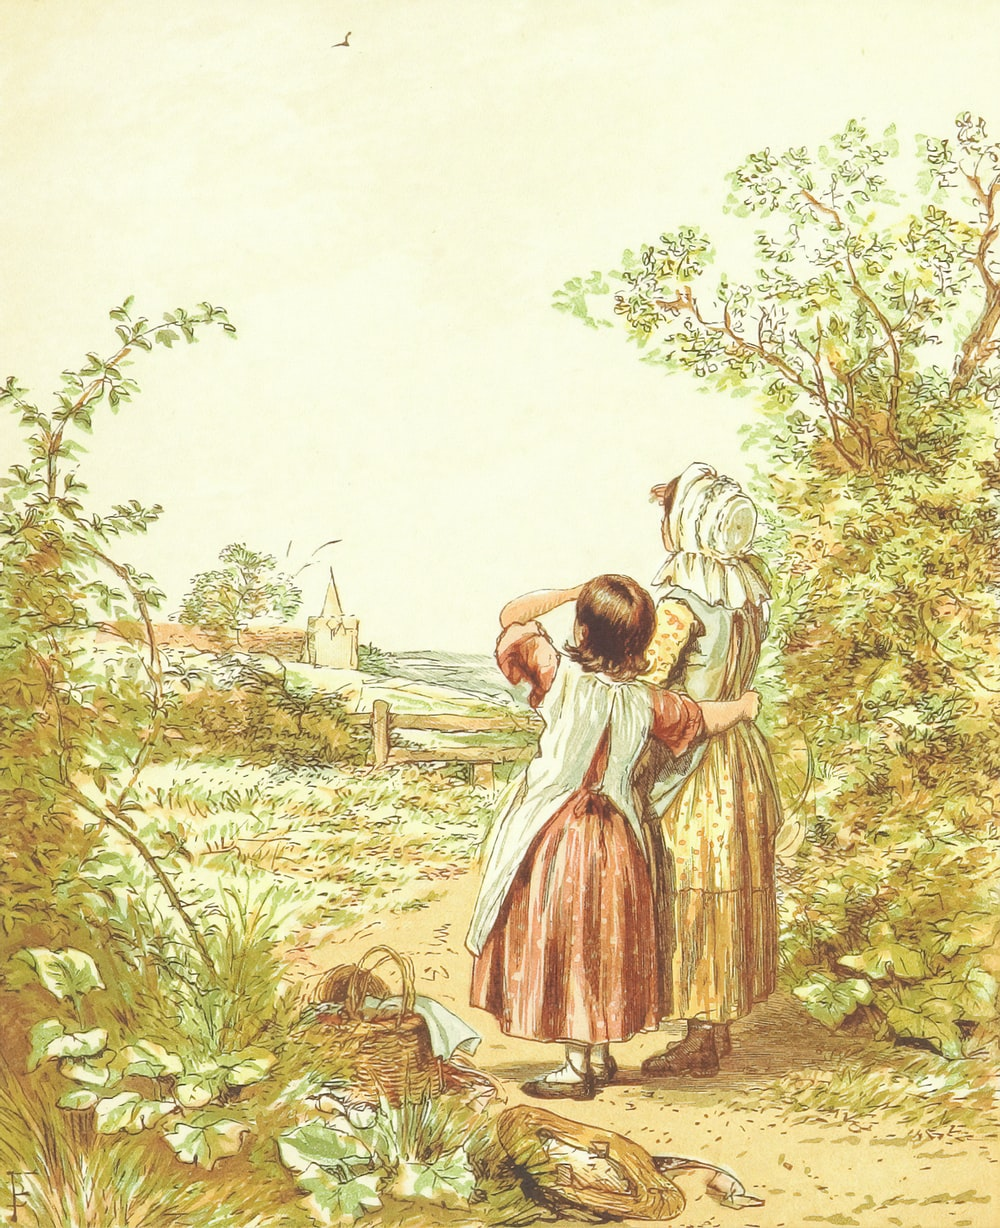 girl in white dress standing on brown soil surrounded by green plants